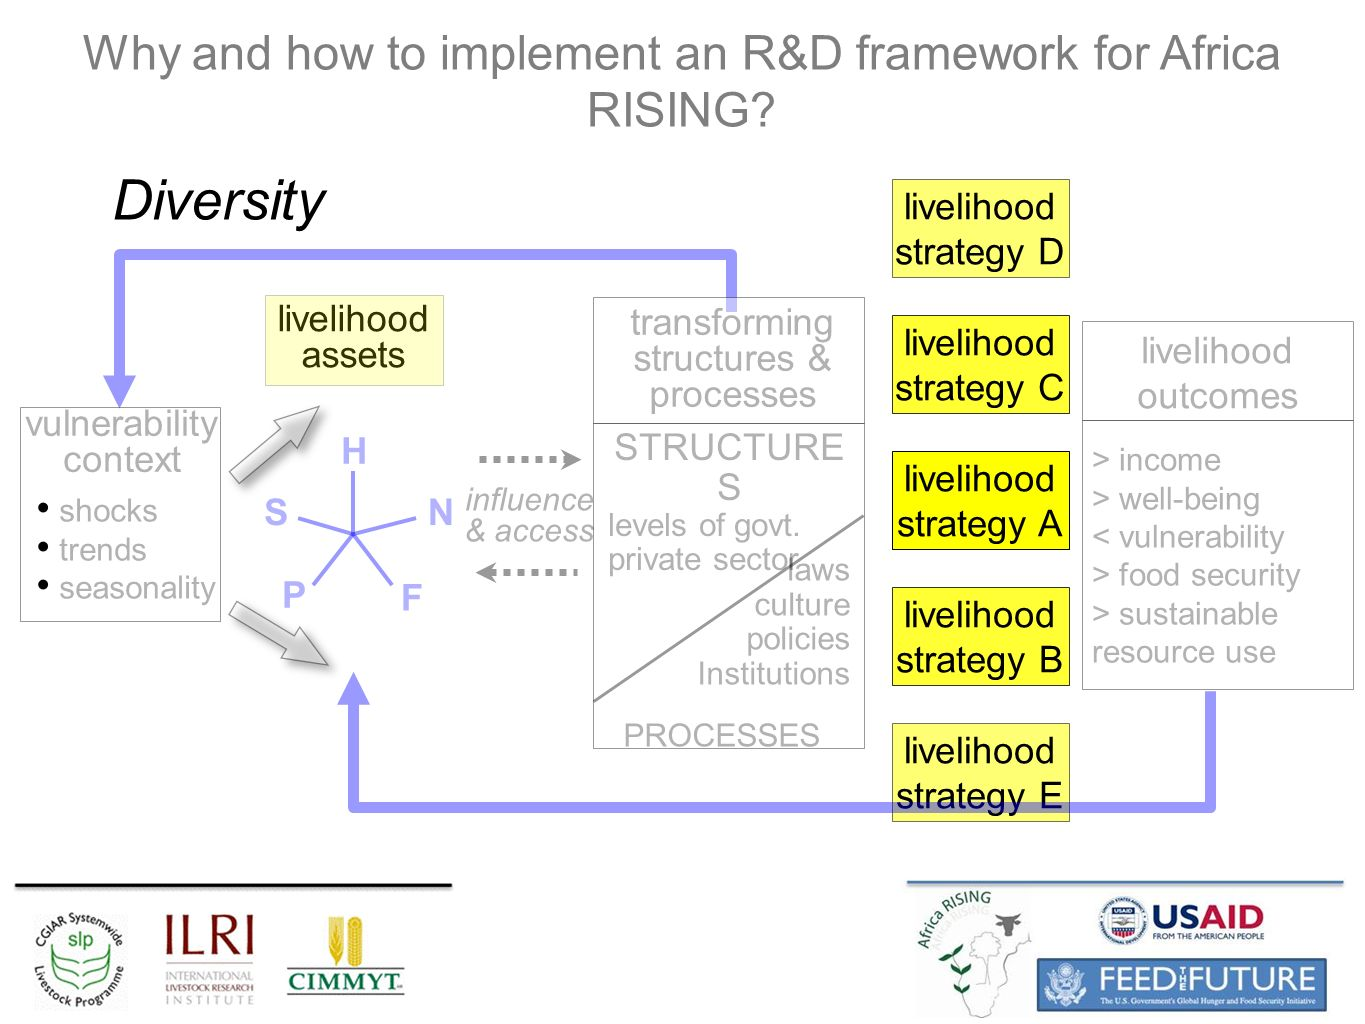 livelihood assets livelihood strategy A livelihood strategy C livelihood strategy B livelihood strategy D livelihood strategy E Why and how to implement an R&D framework for Africa RISING.